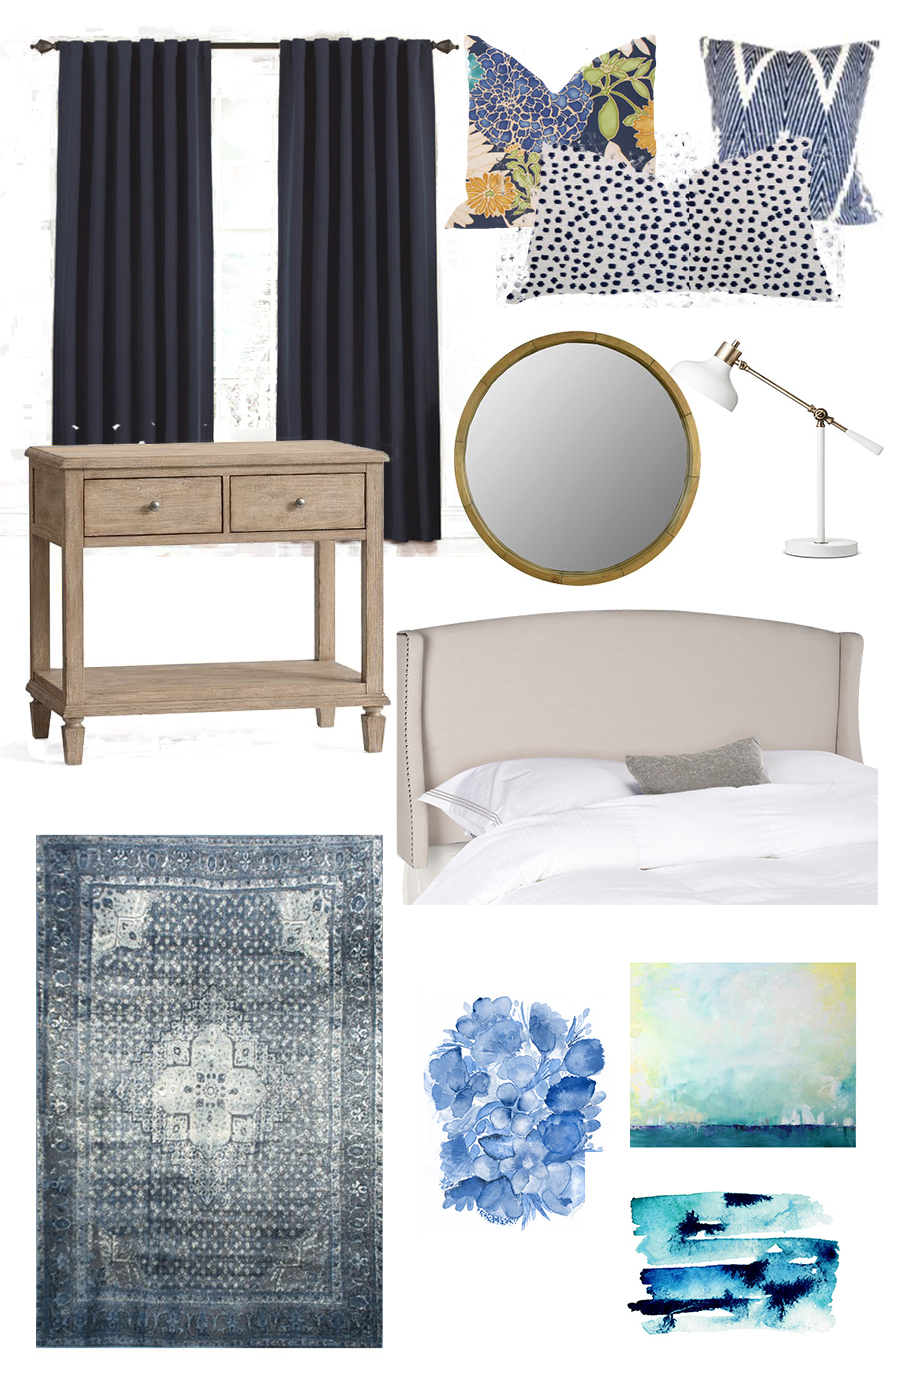 How to Decorate the Perfect Room - A Step by Step Guide to Decorating Start to Finish